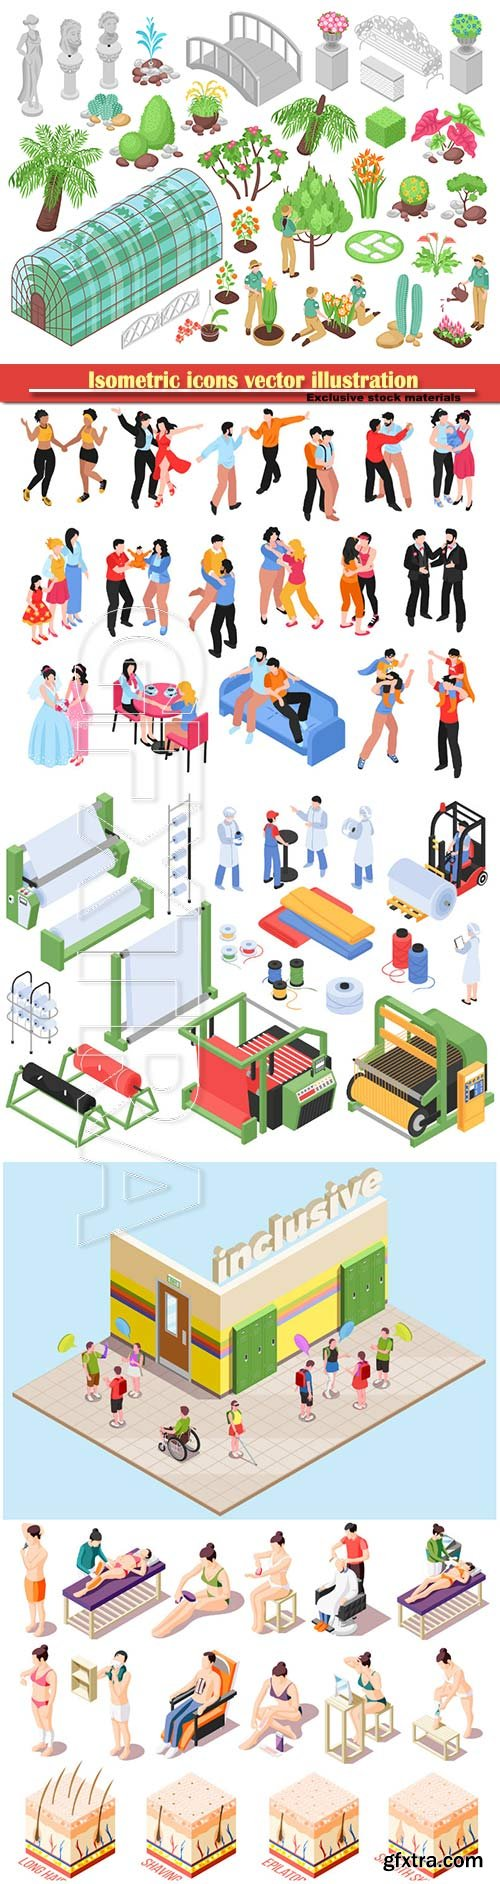 Isometric icons vector illustration, banner design template # 17